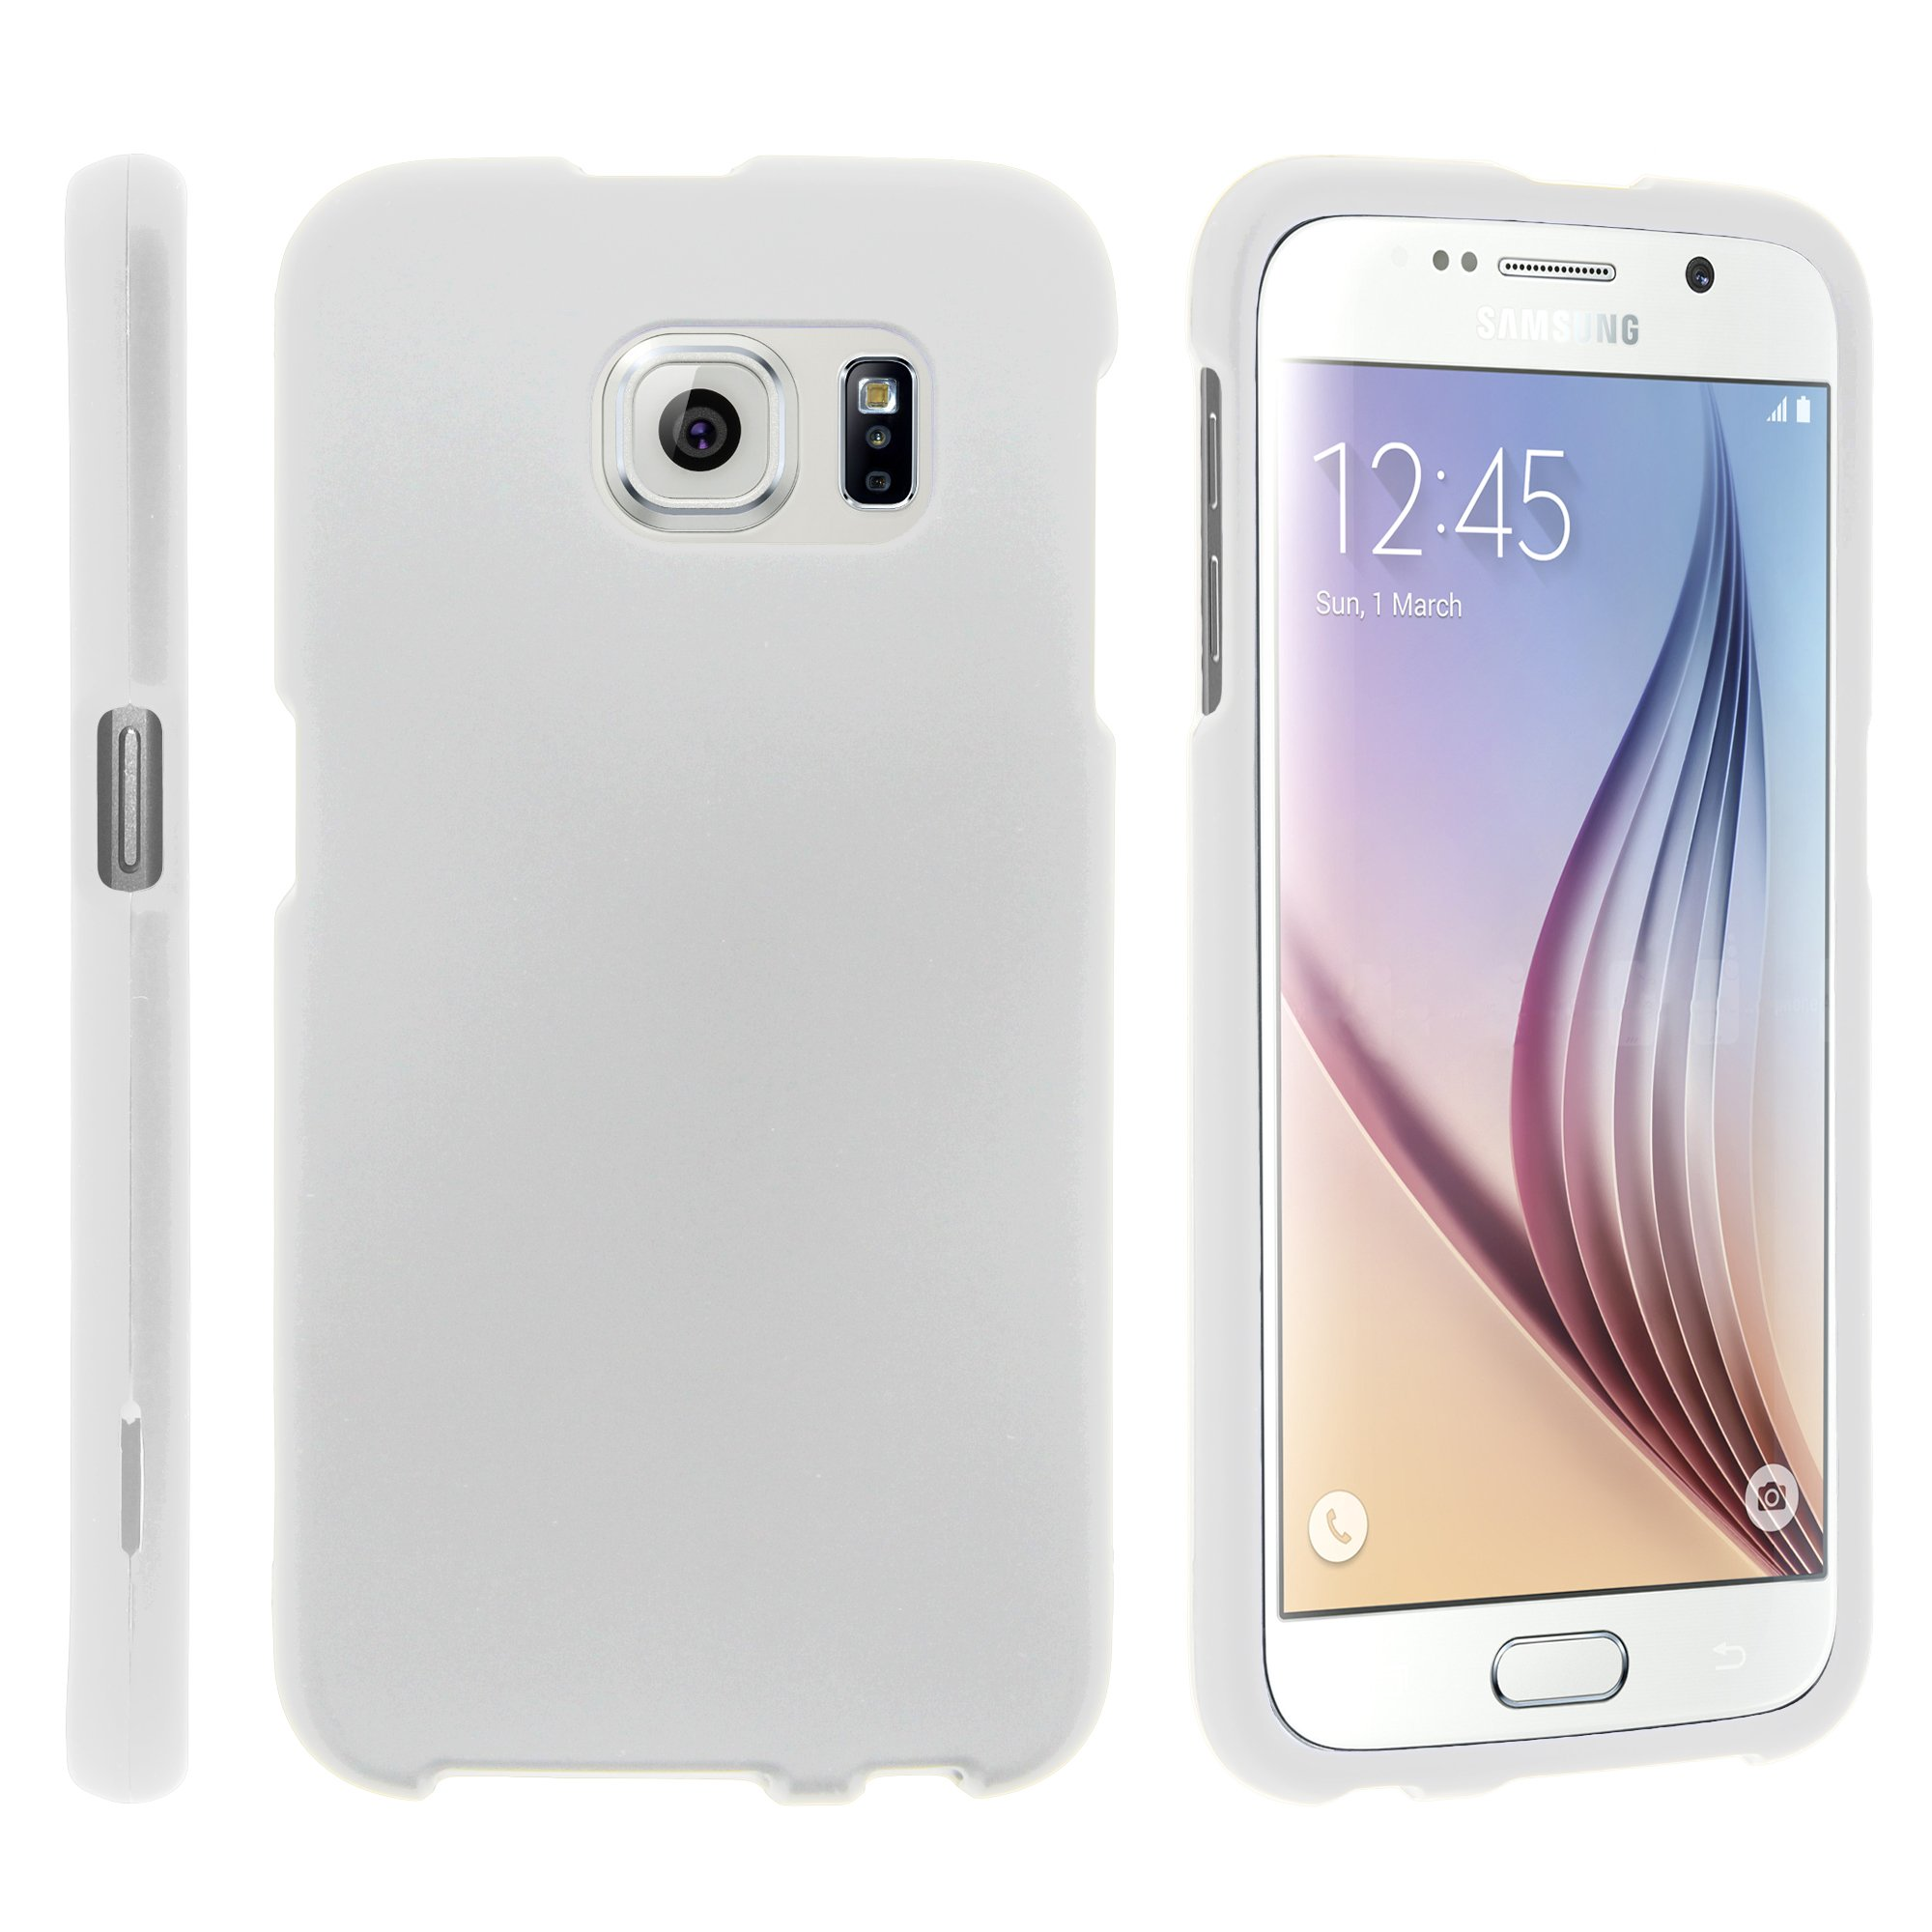 Samsung Galaxy S6 Edge G925, [SNAP SHELL][White] 1 Piece Snap On Rubberized Hard White Plastic Cell Phone Case with Exclusive Art -  White